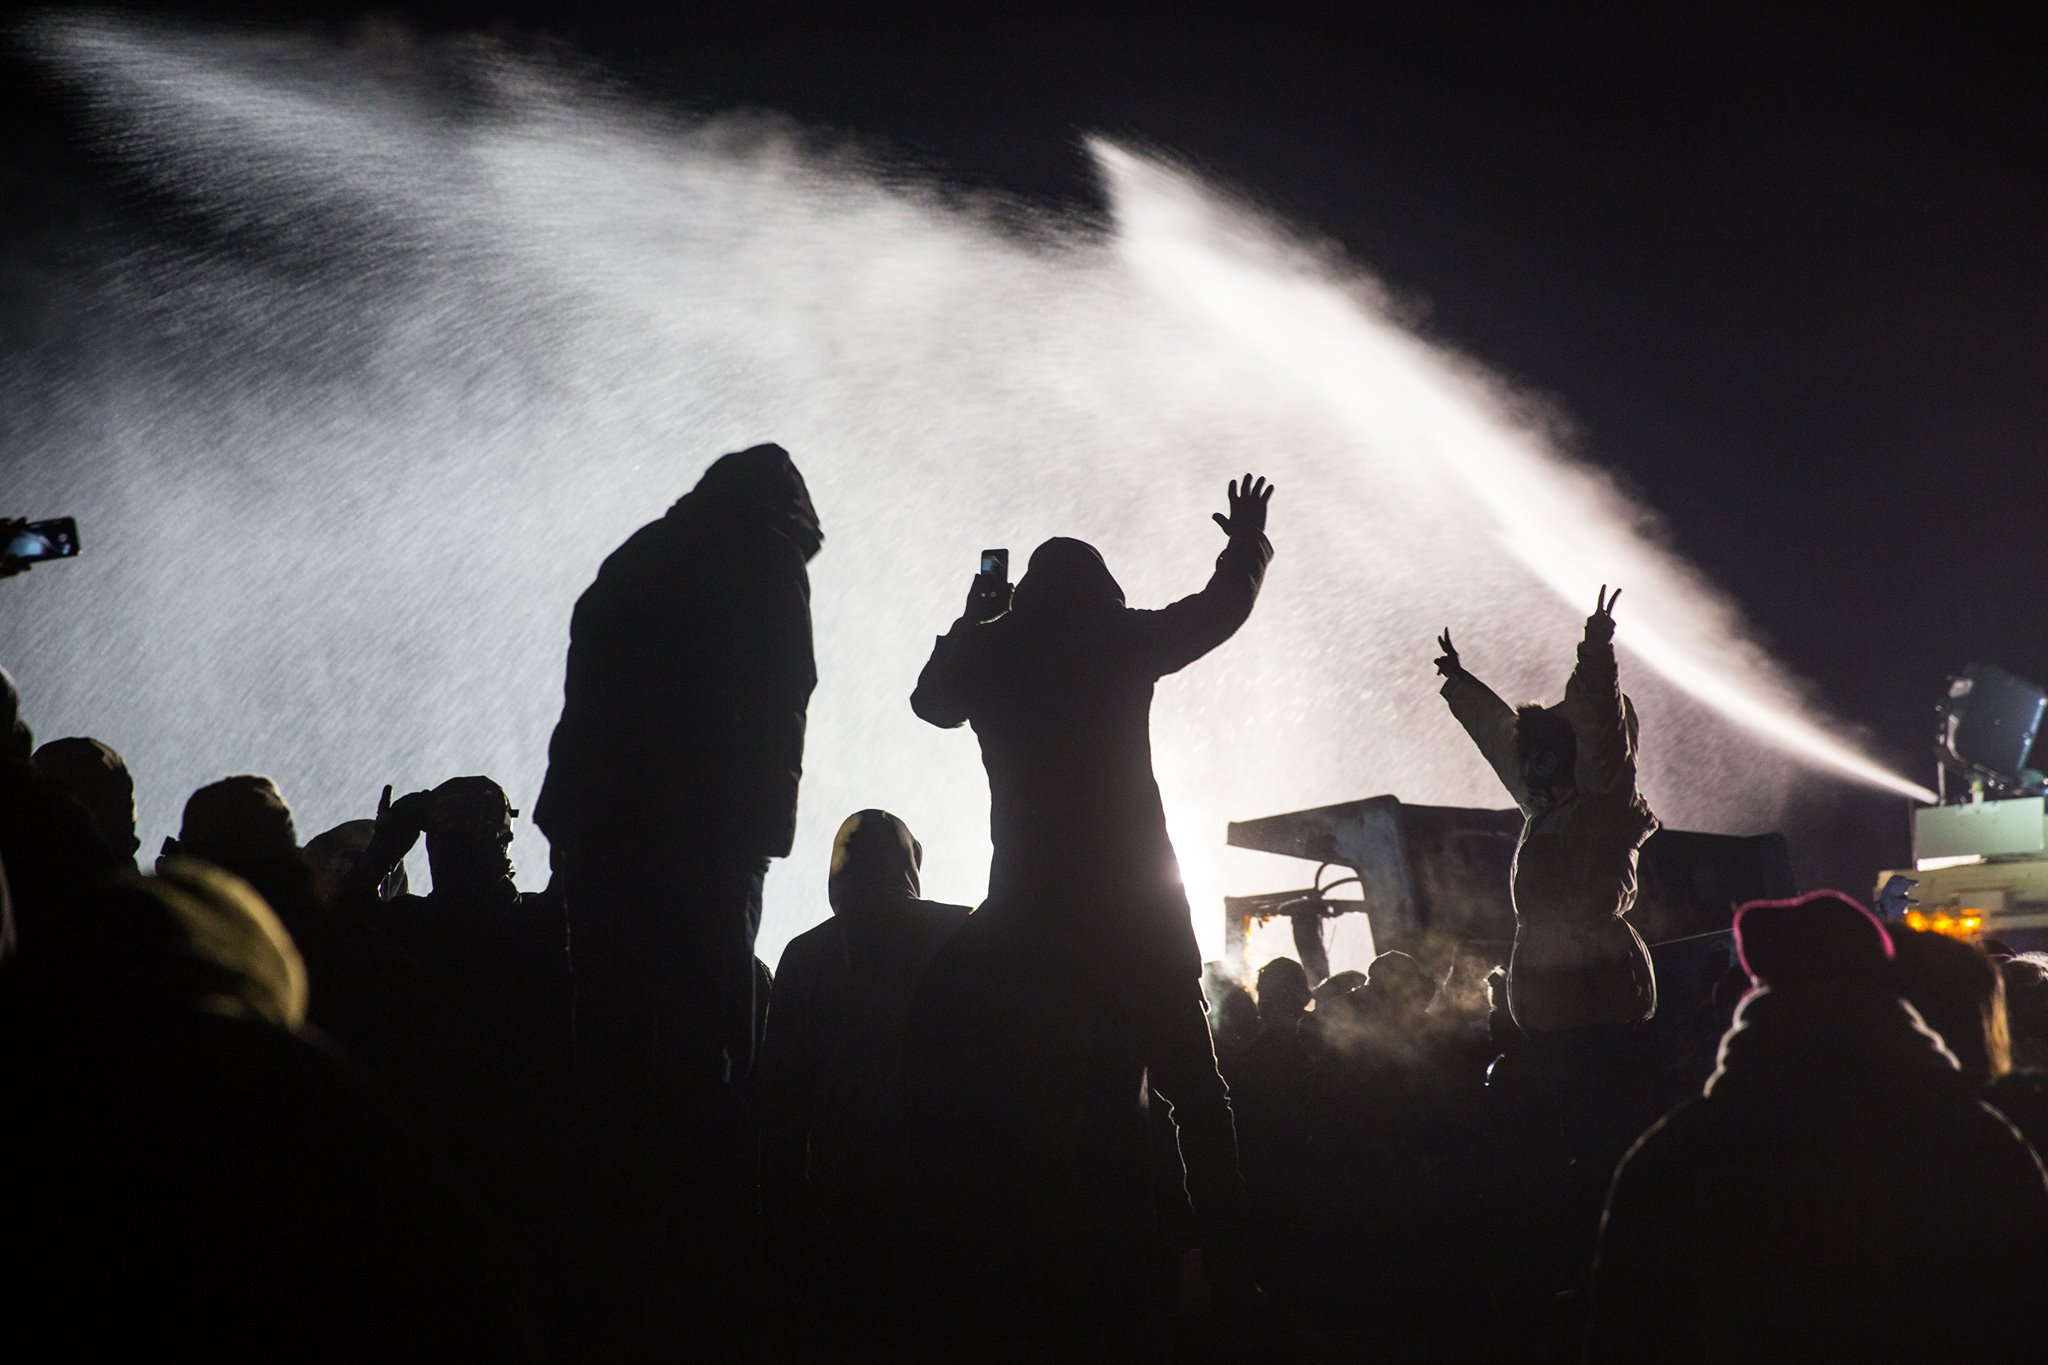 Water Cannons Fired at Water Protectors in Freezing